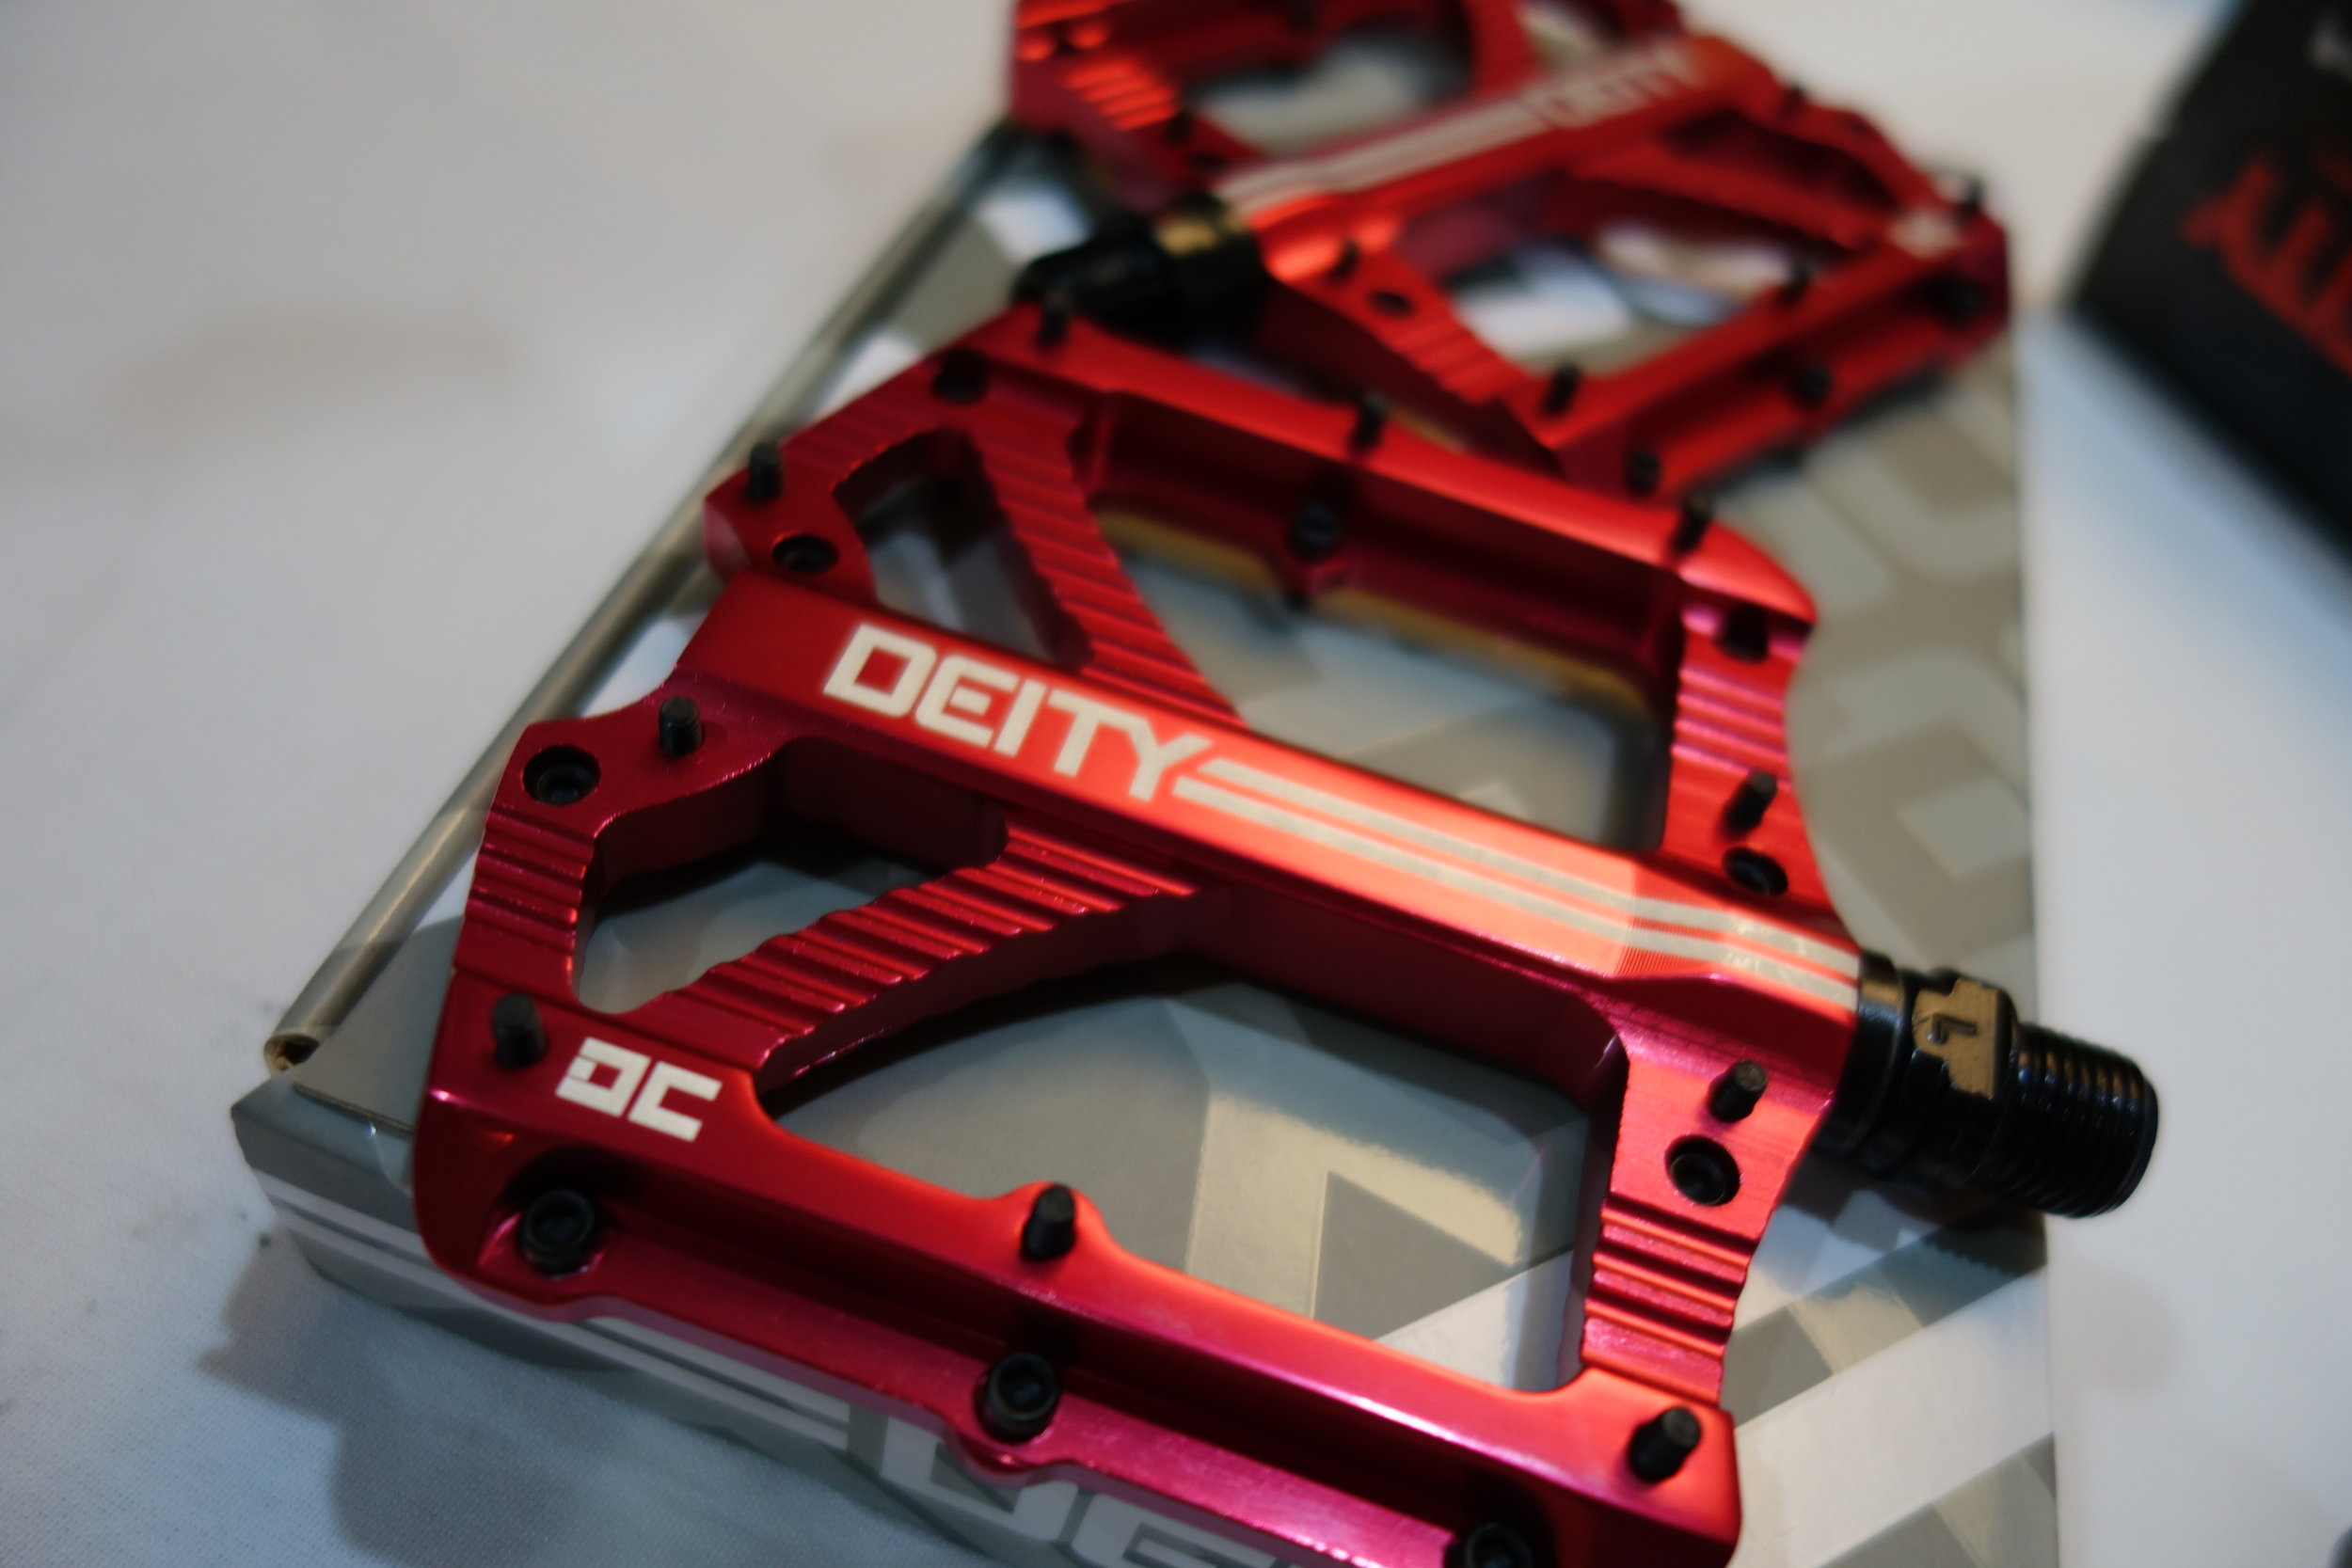 Another exciting brand they have is Deity. Strong looking pedals , handlebars and stems.